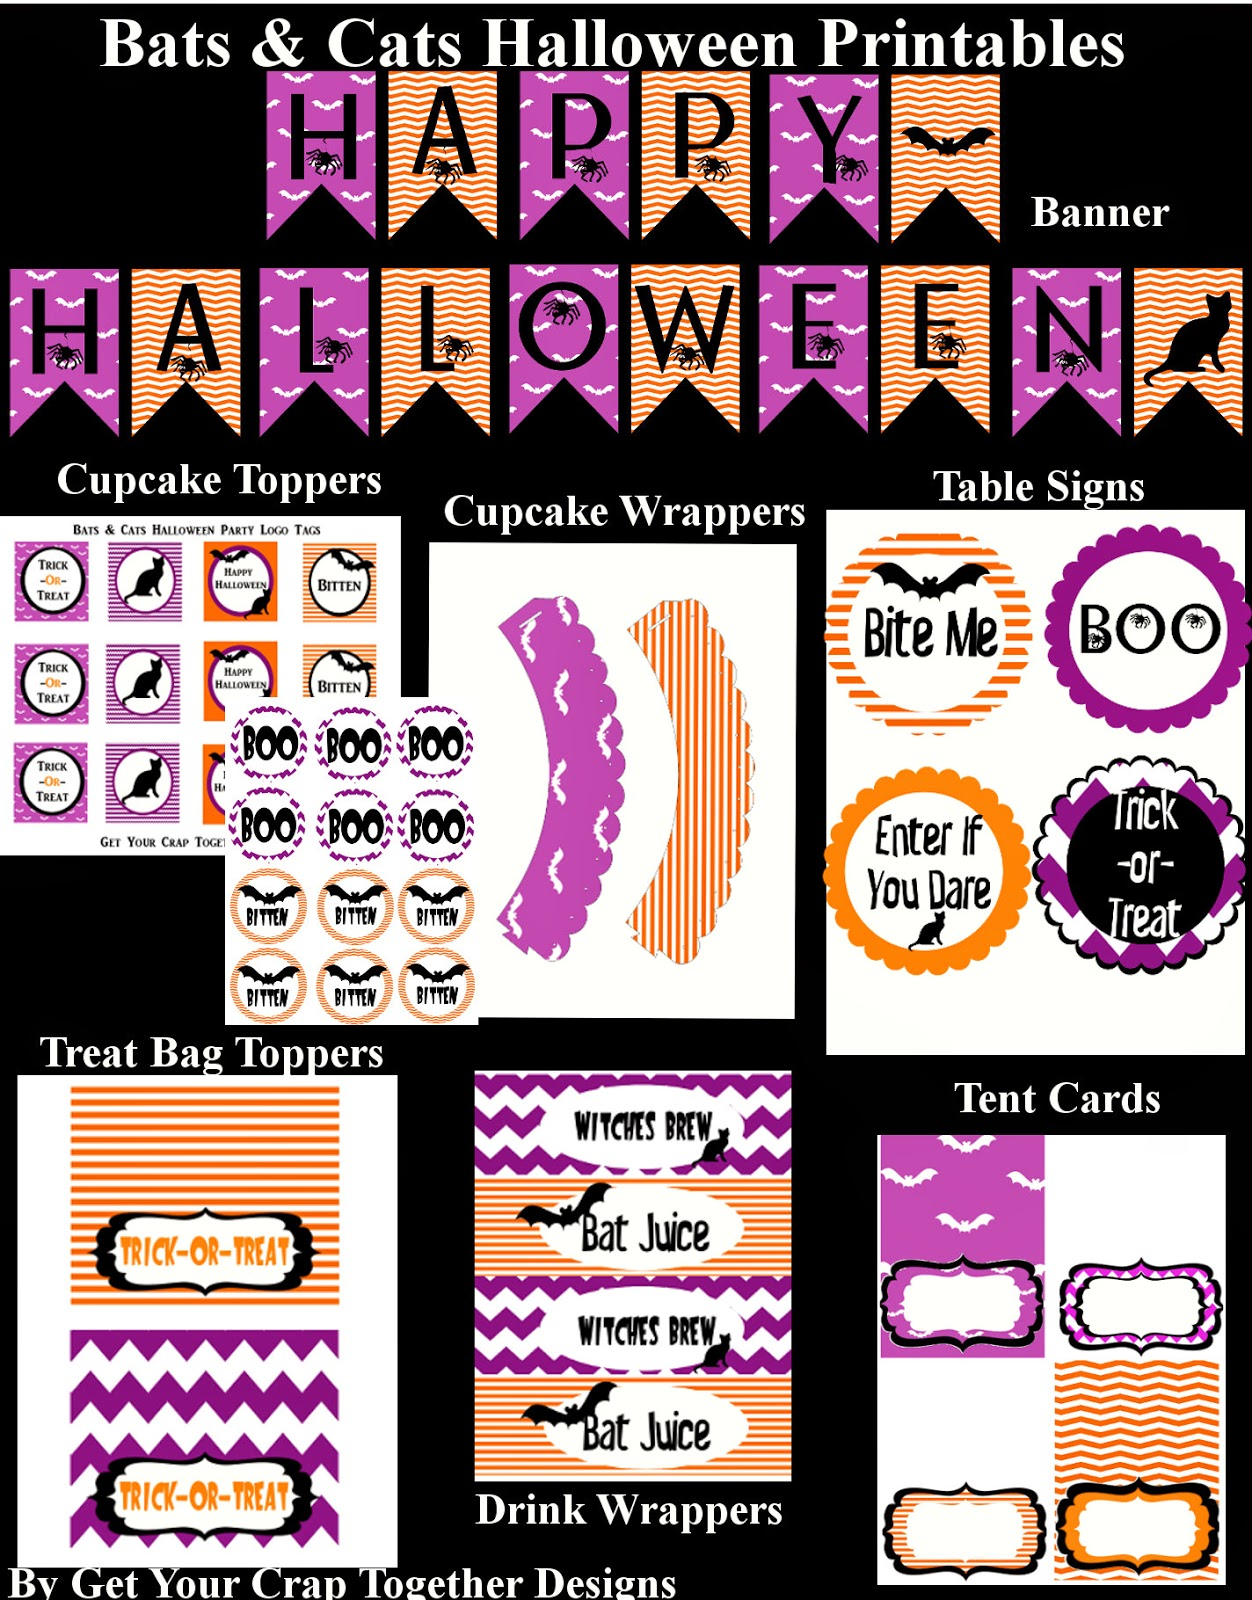 Make your Halloween party memorable with this these free halloween printables for a fun bat and cat party.  Simply download, print and start decorating.